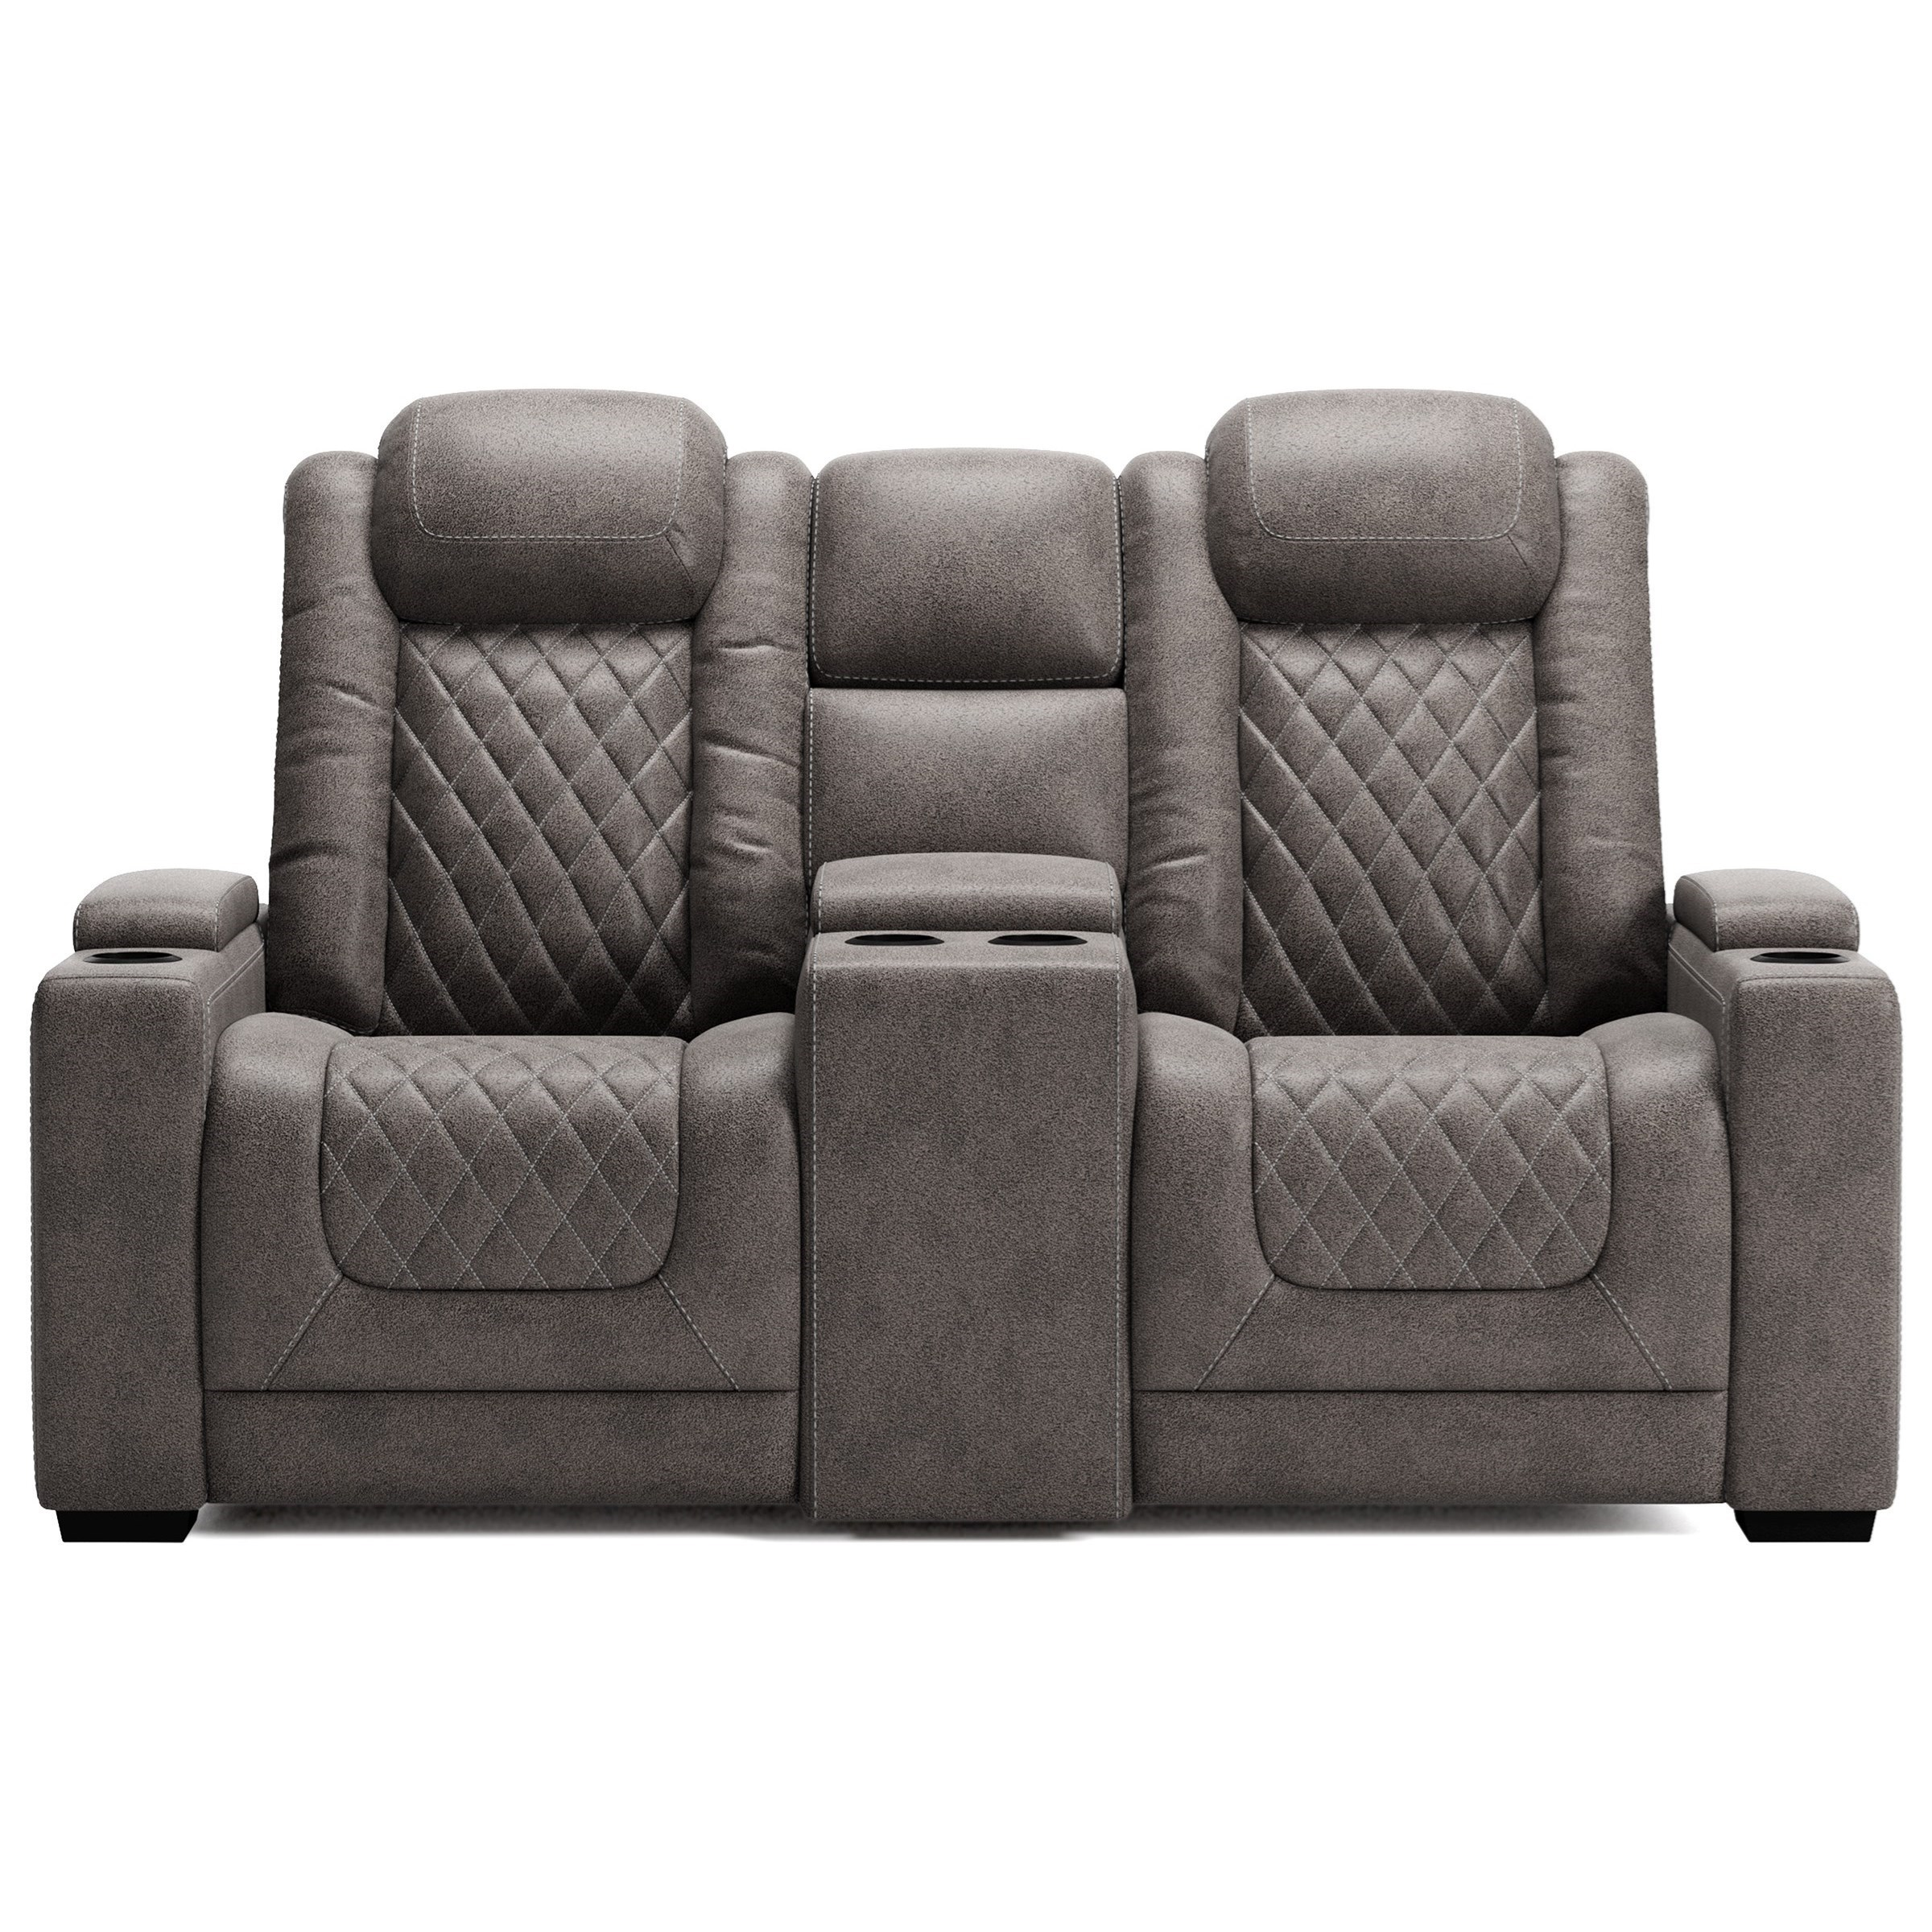 Hyllmont Pwr Rec Loveseat with Console and Adj Hdrsts by Ashley (Signature Design) at Johnny Janosik